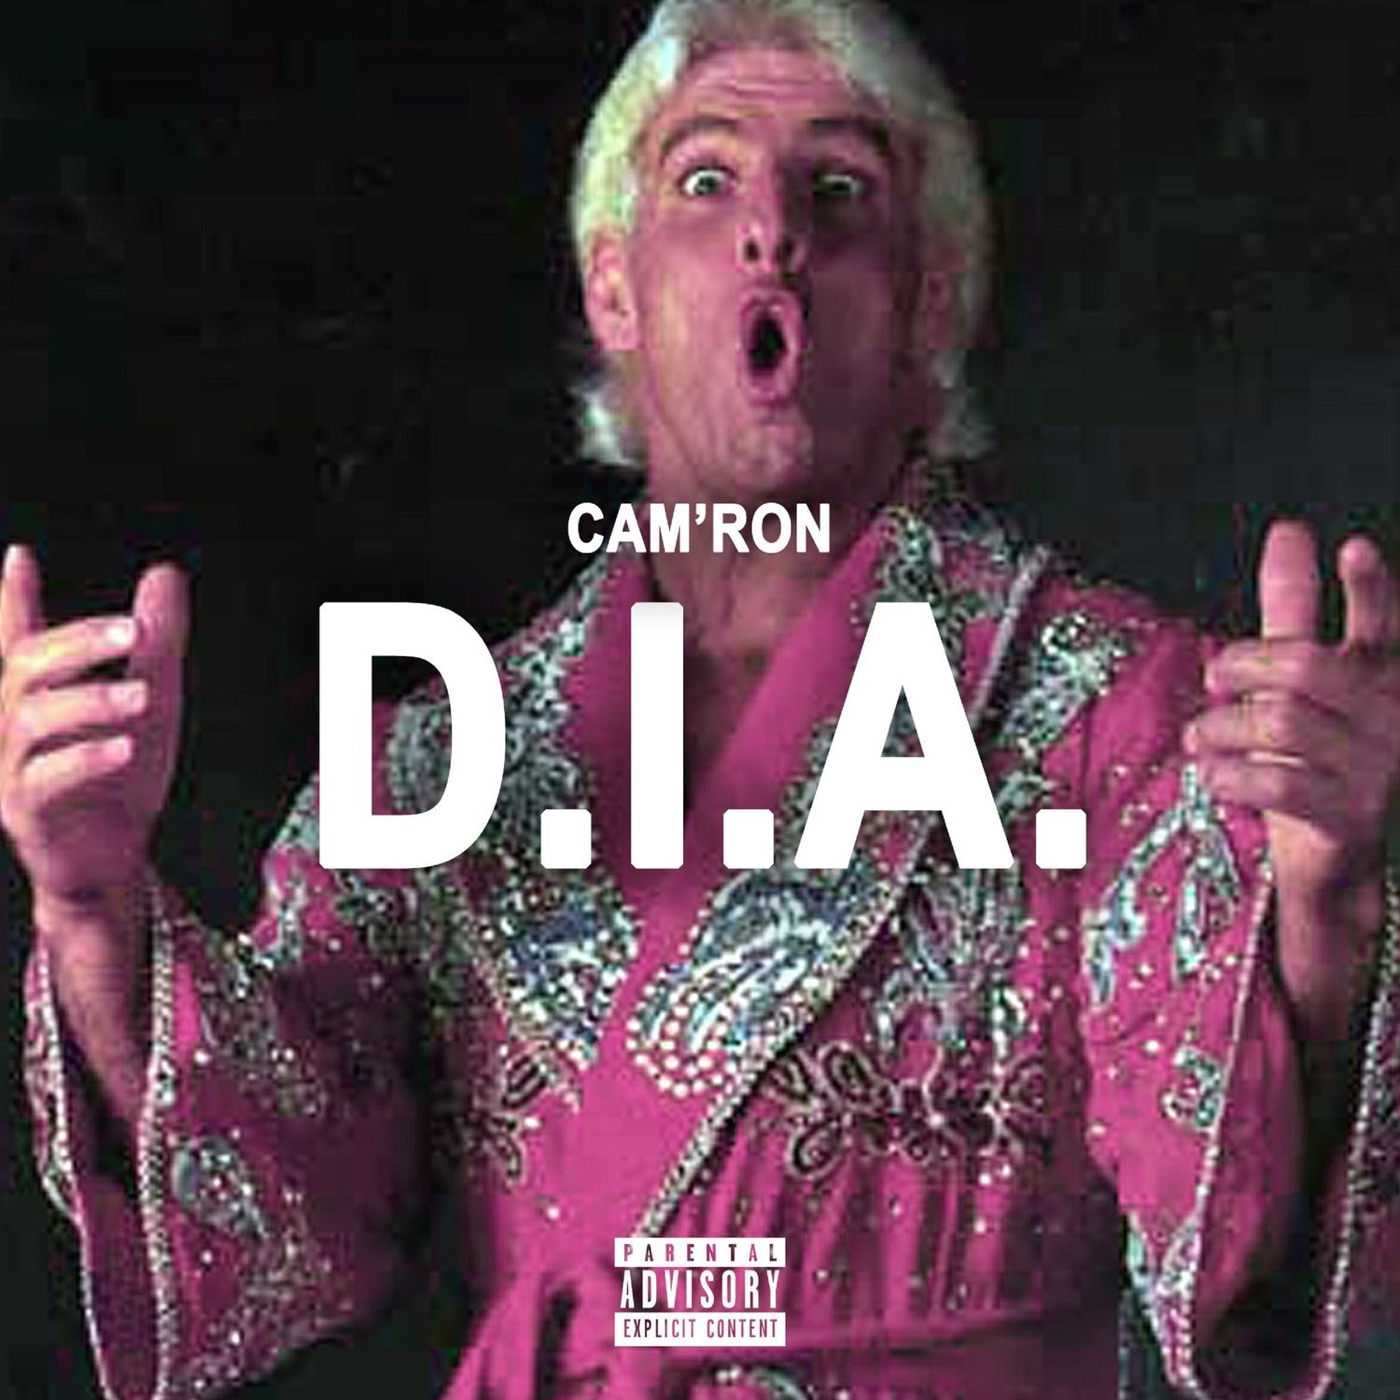 Cam'ron - Yell - Single Cover